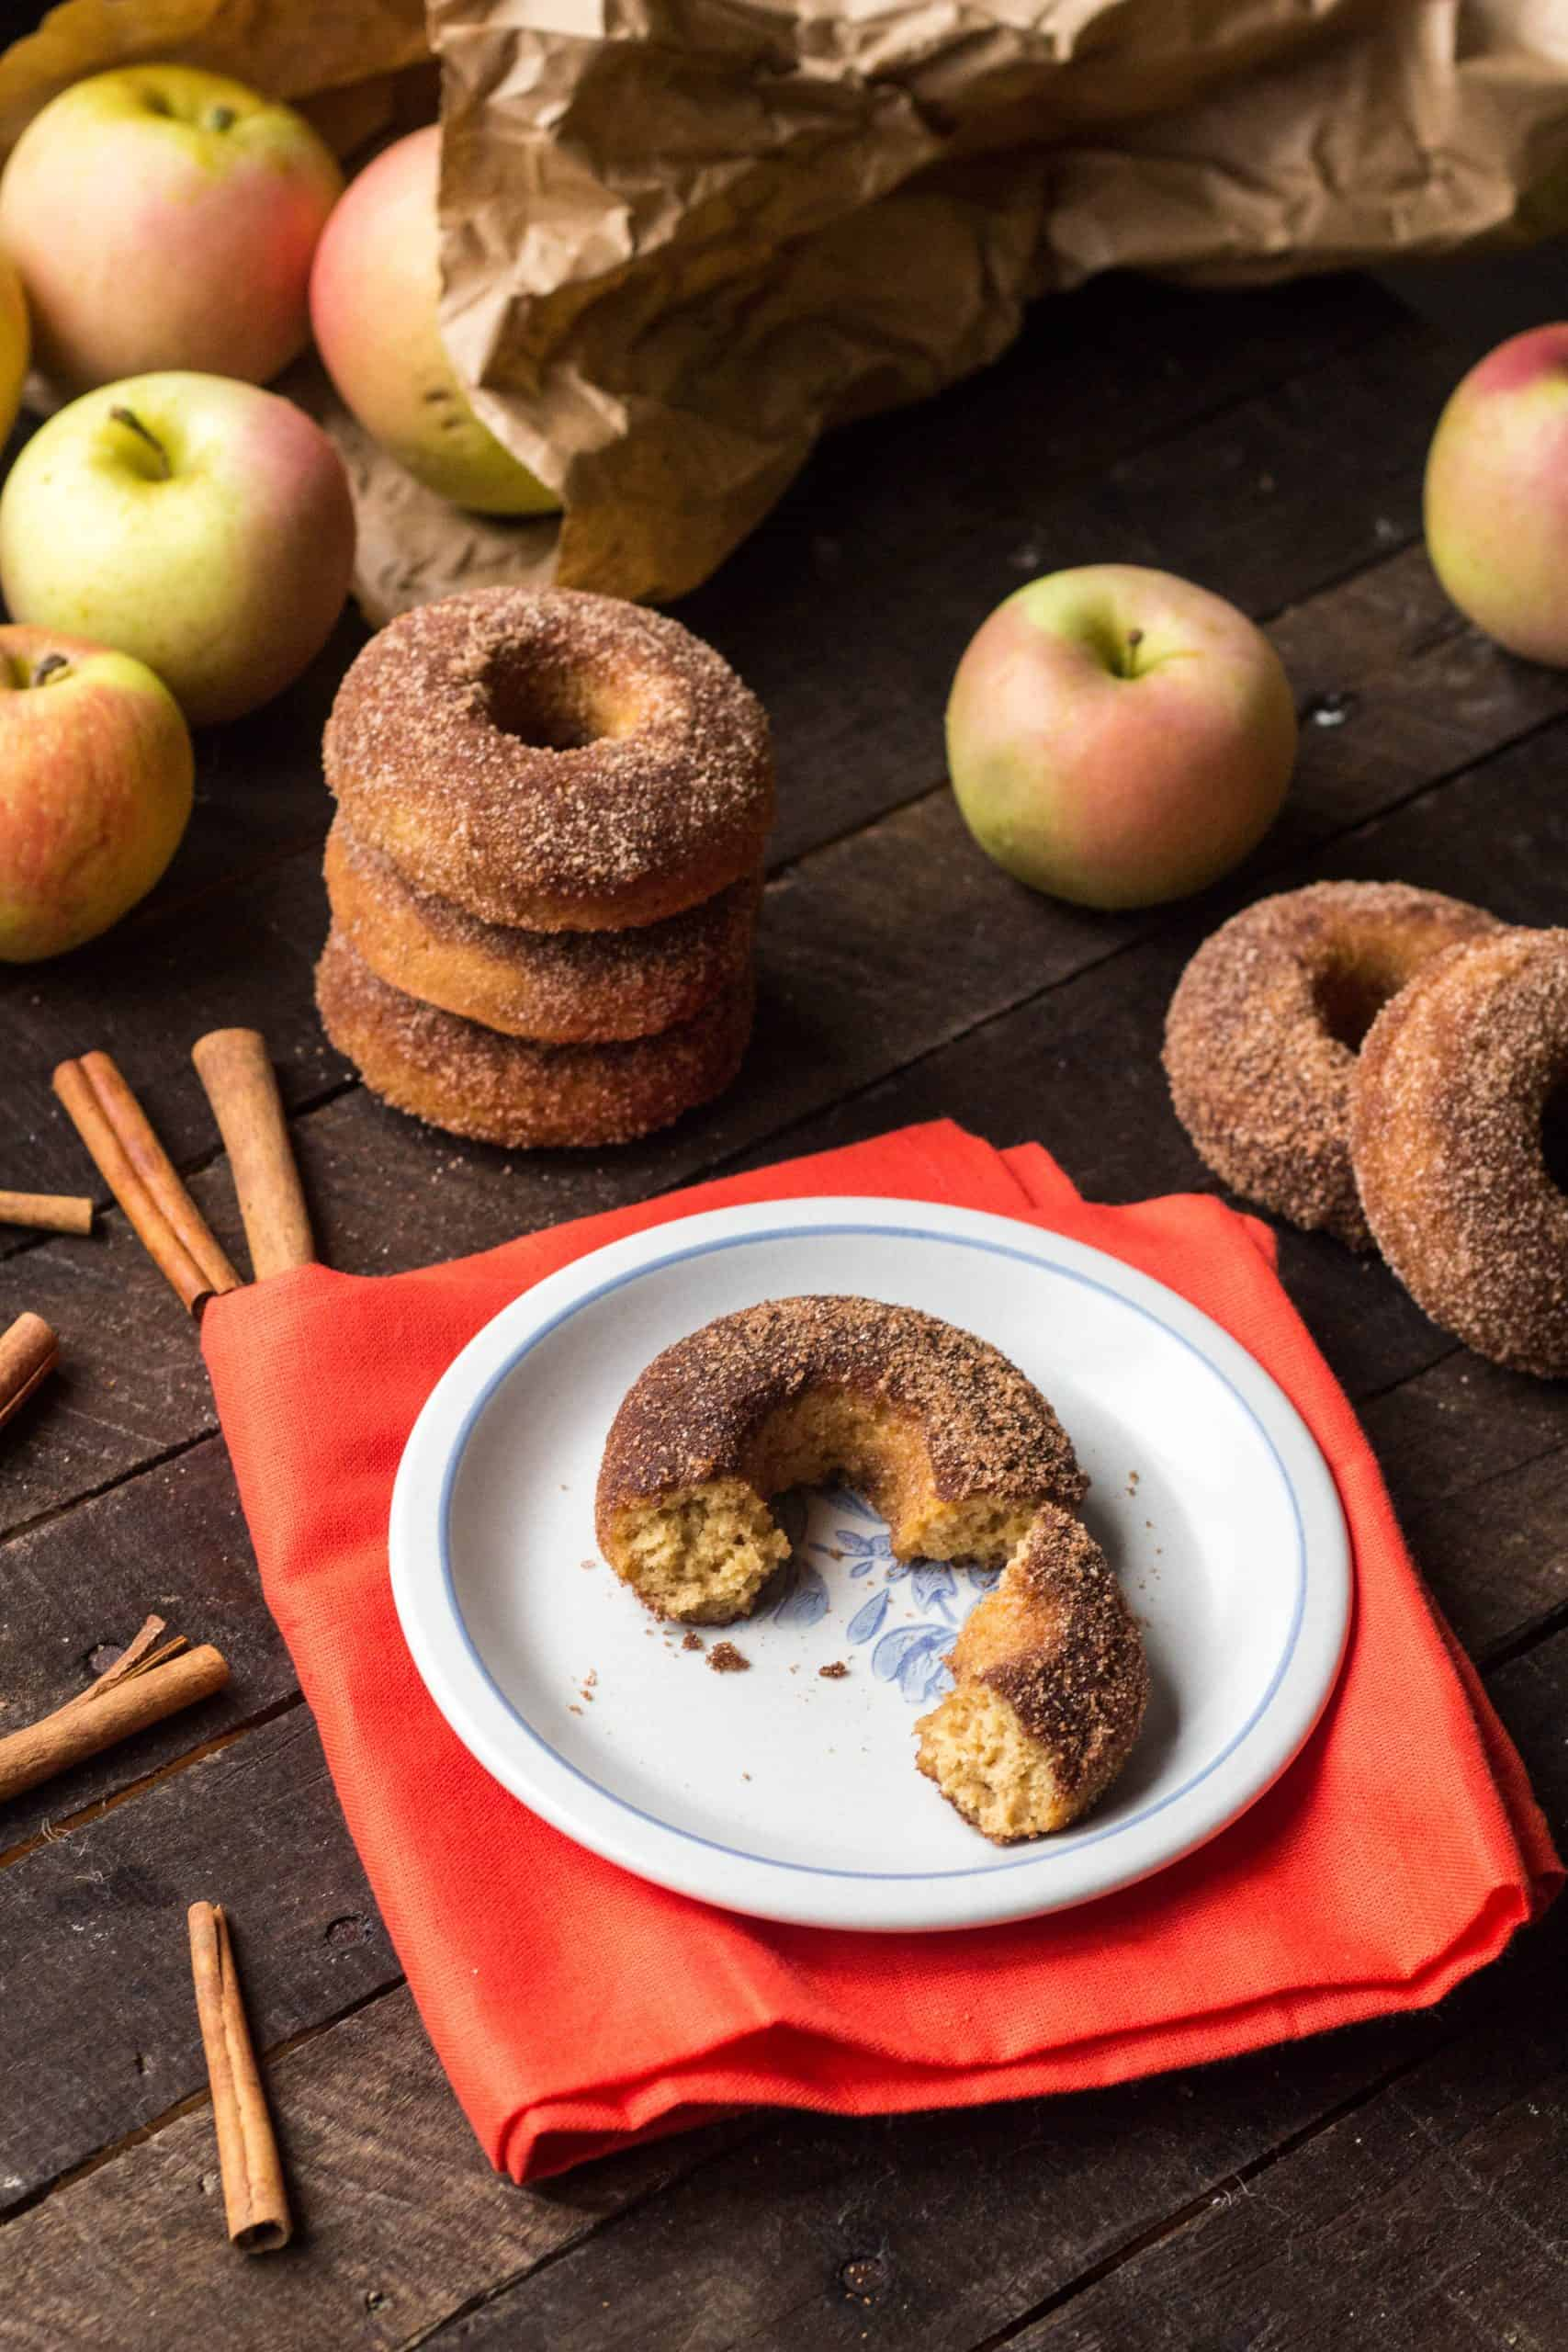 Broken apple cider doughnut on a gray plate with a red-orange napkin on a dark wood table with a stack of more doughnuts, apples, a brown paper bag and cinnamon sticks in the background